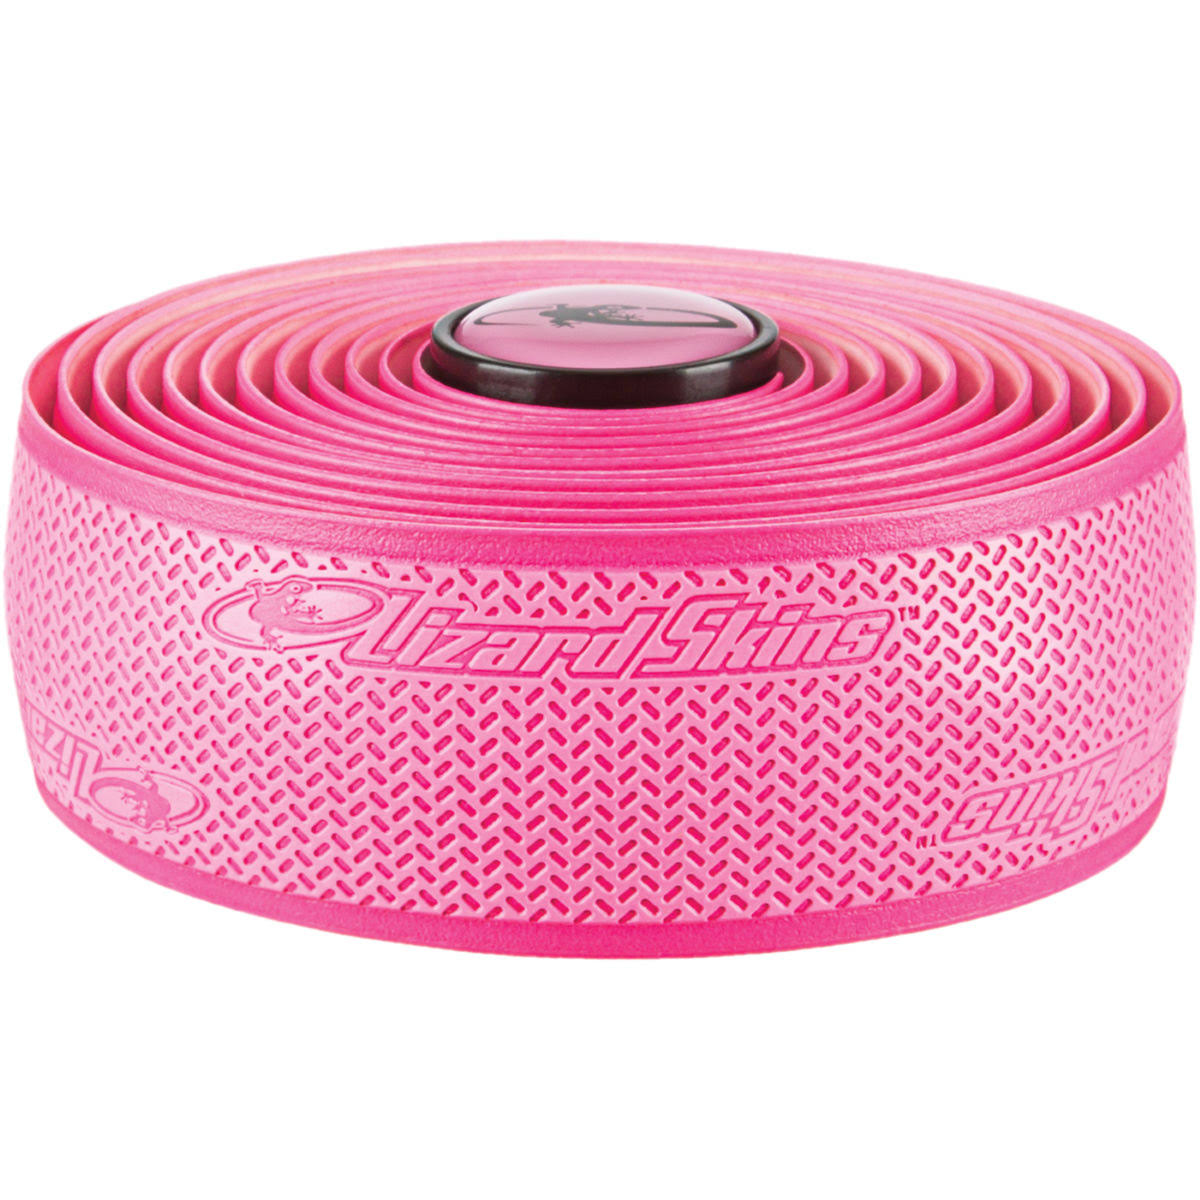 Lizard Skins DSP Bar Tape - Neon Pink, 2.5mm